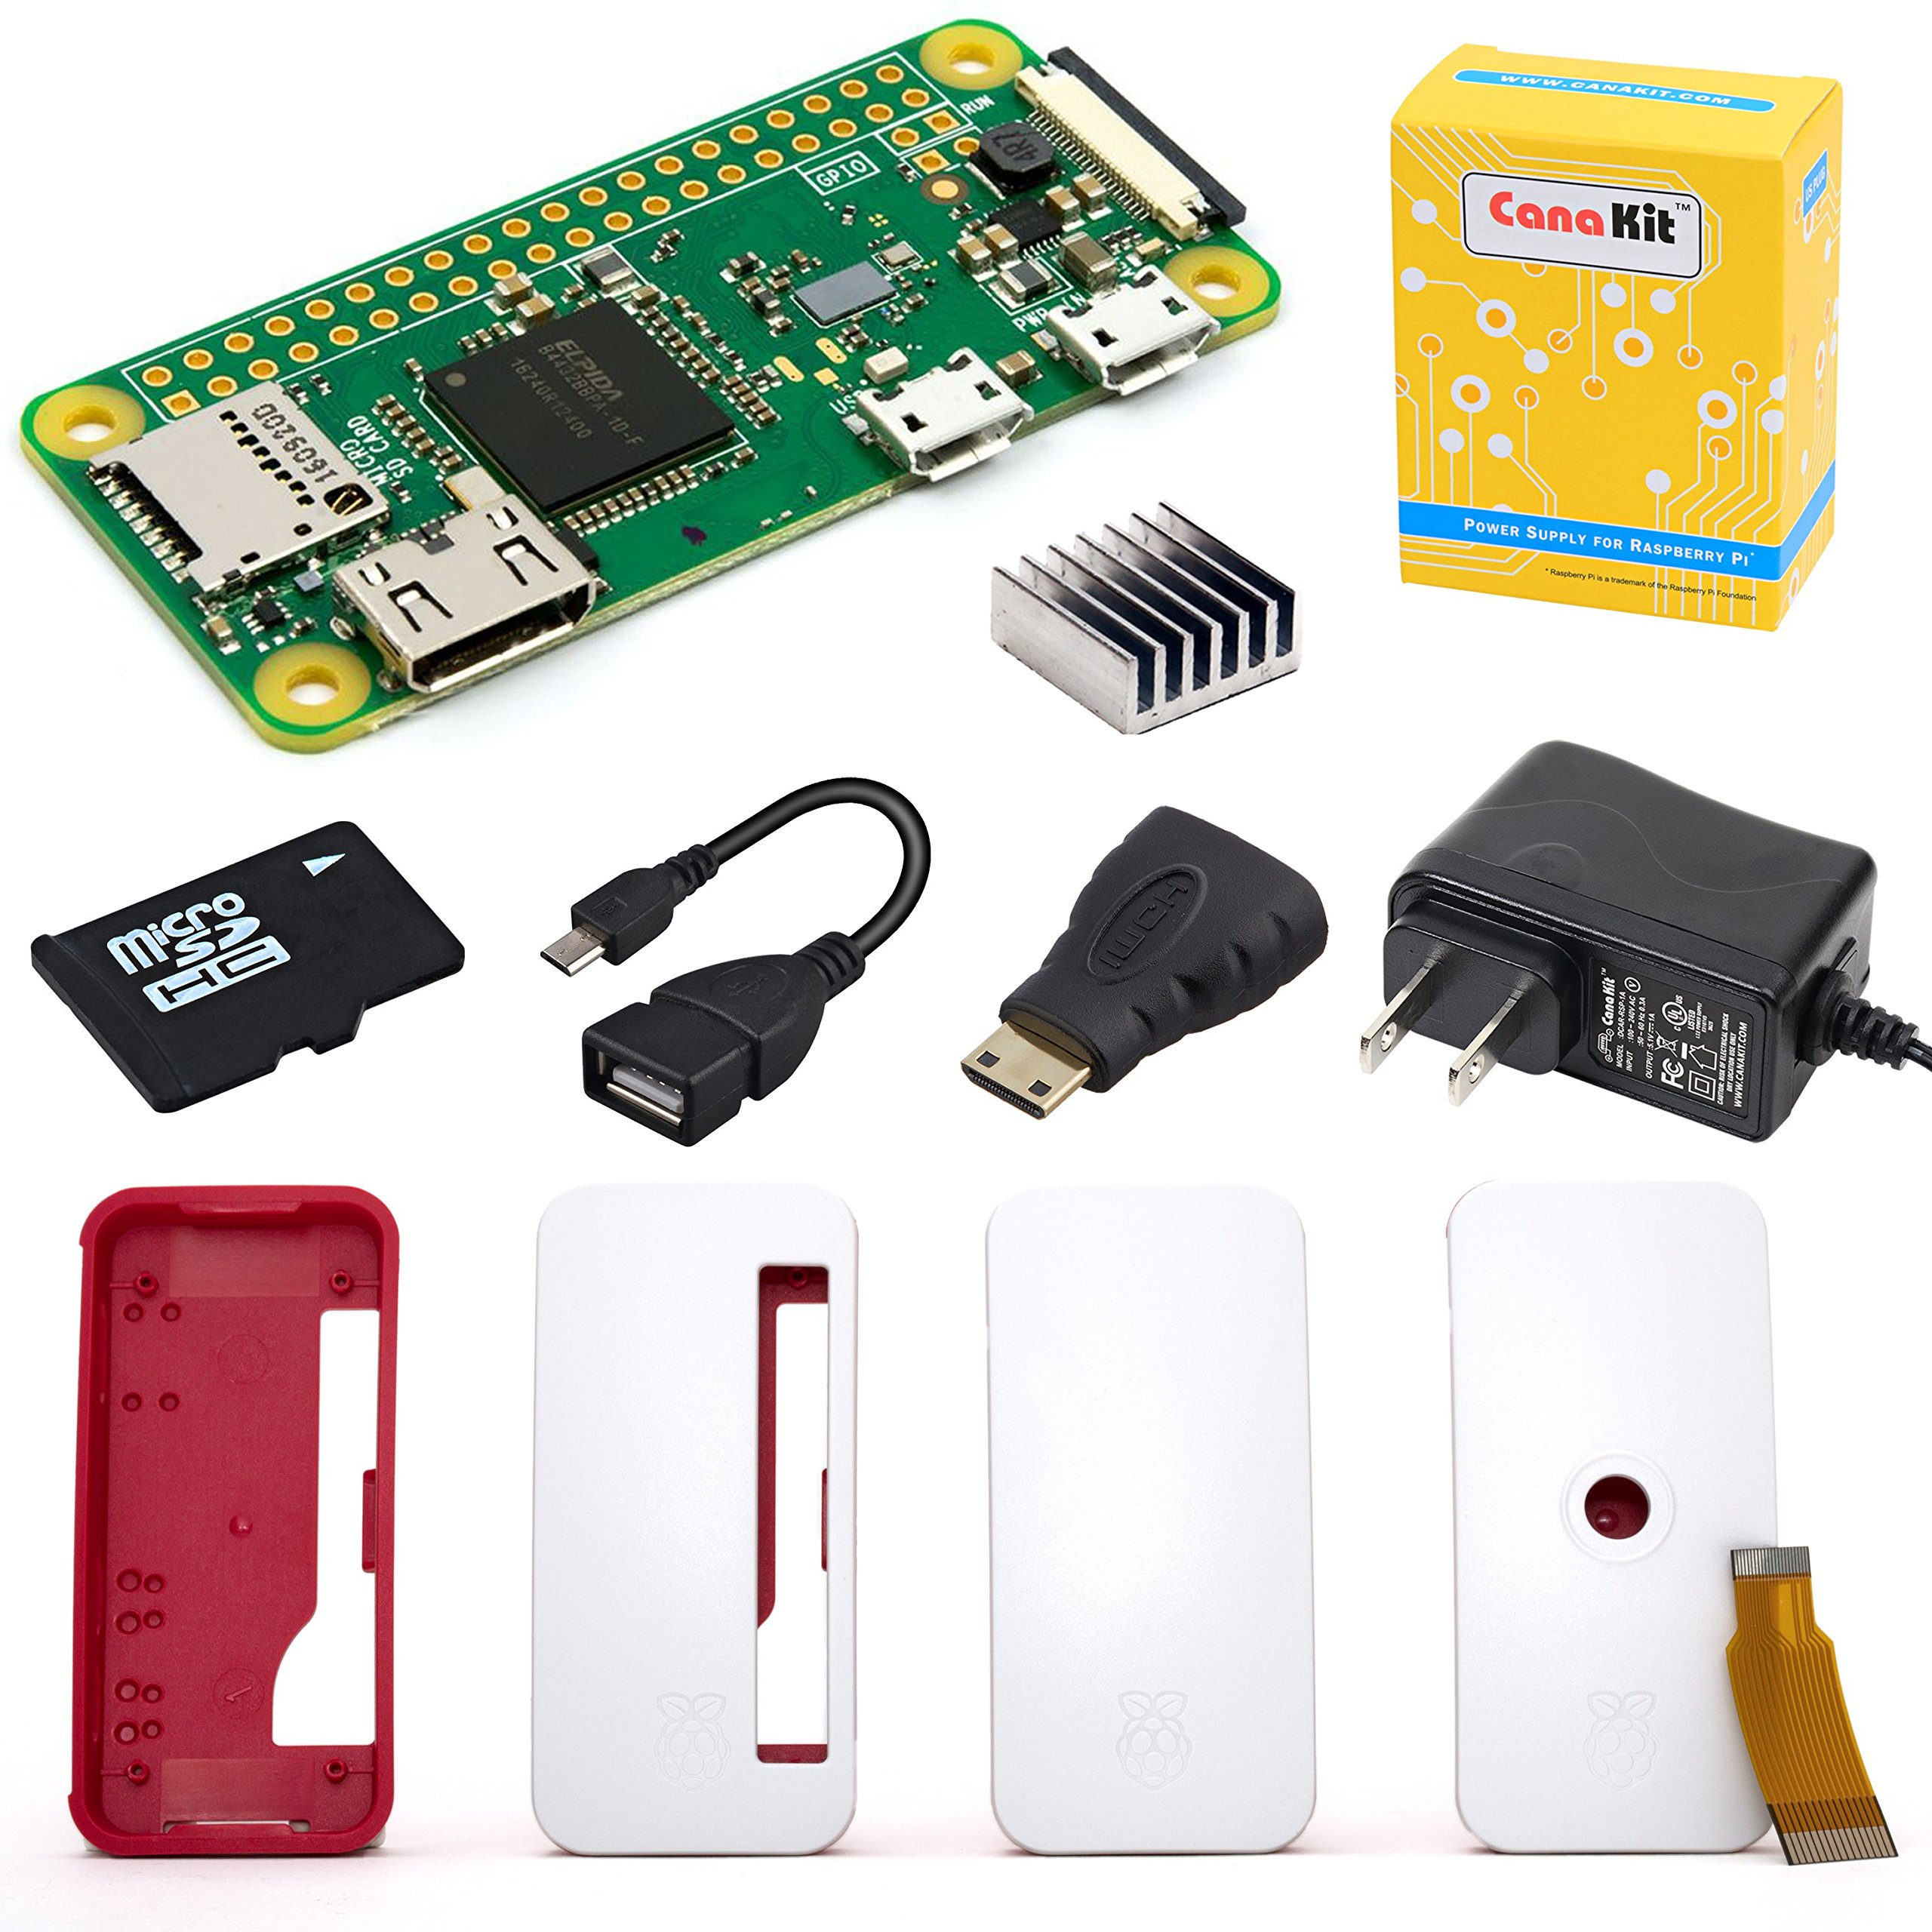 CanaKit Raspberry Pi Zero W (Wireless) Starter Kit with Official Case - 8 GB Edition